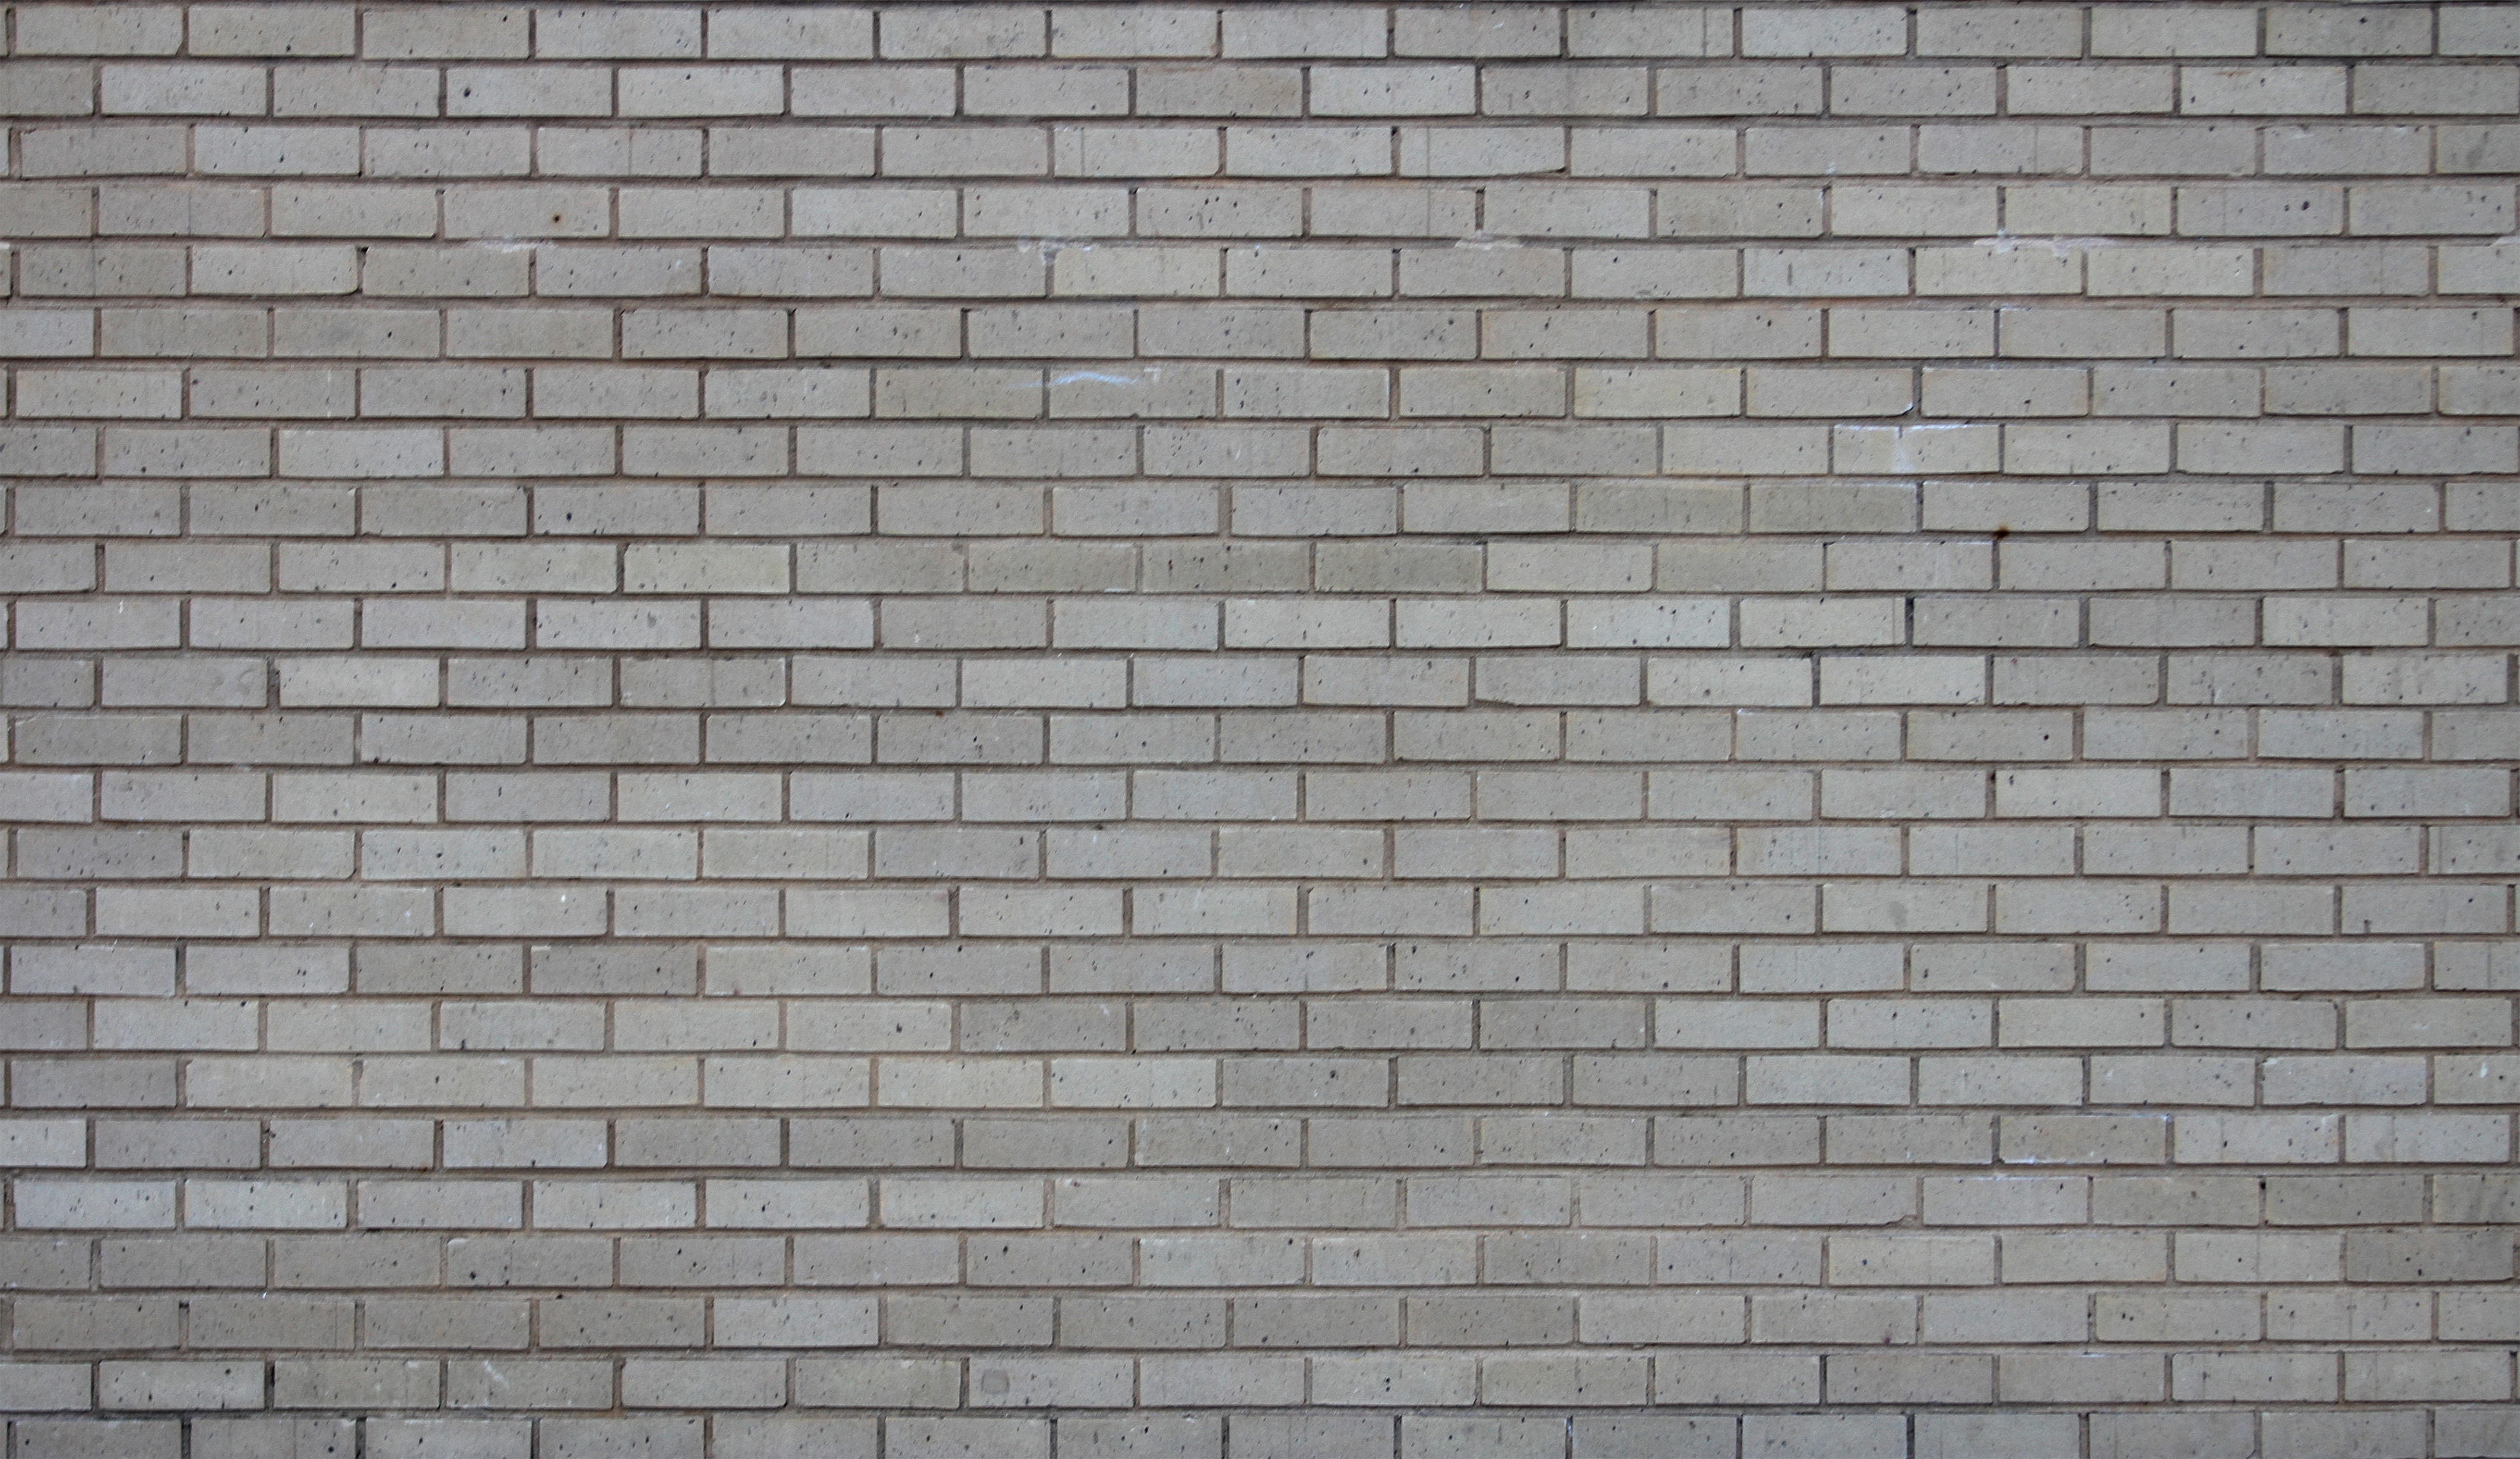 Lite Gray Brick Wall Texture - 14Textures